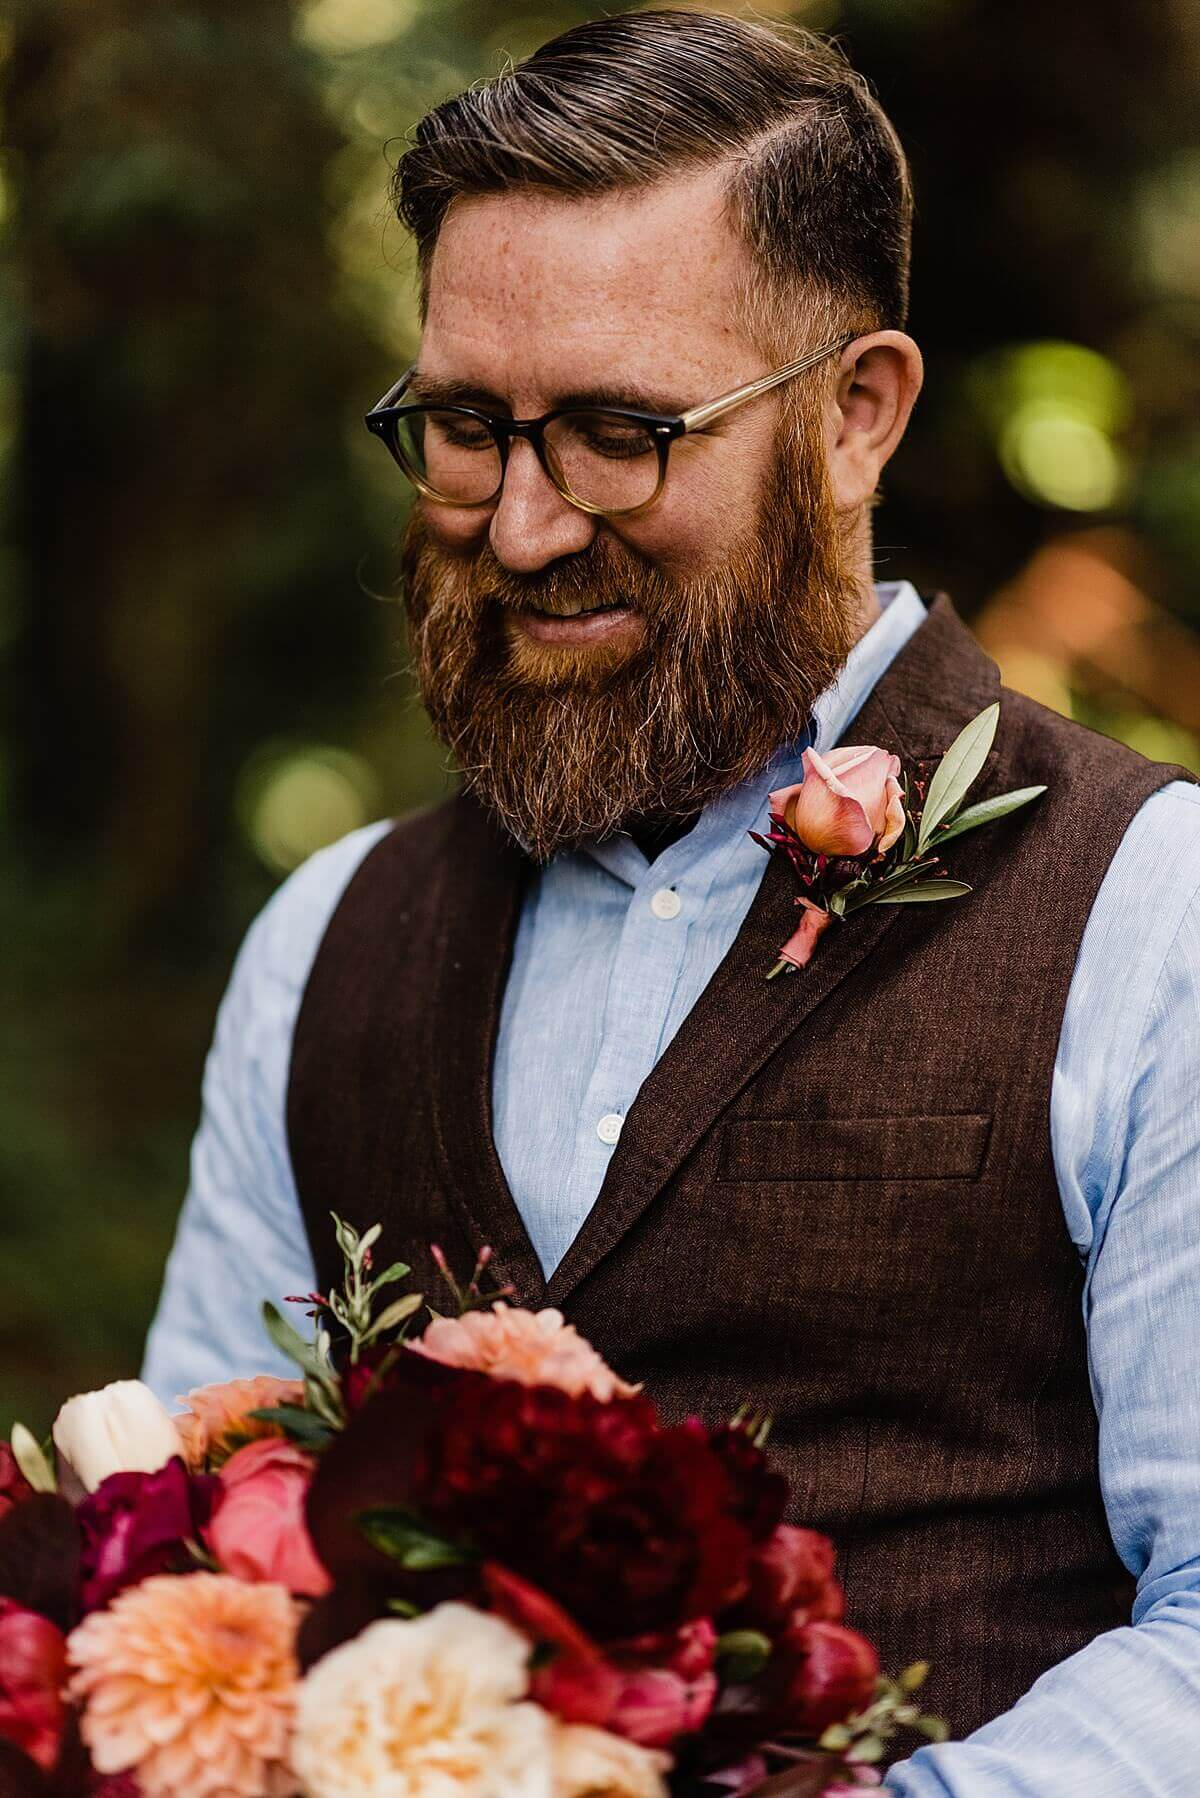 Allison-Brooks-Jedediah-Smiith-Redwoods-Adventure-Elopement-Wedding-S-Photography-Blog_0019.jpg